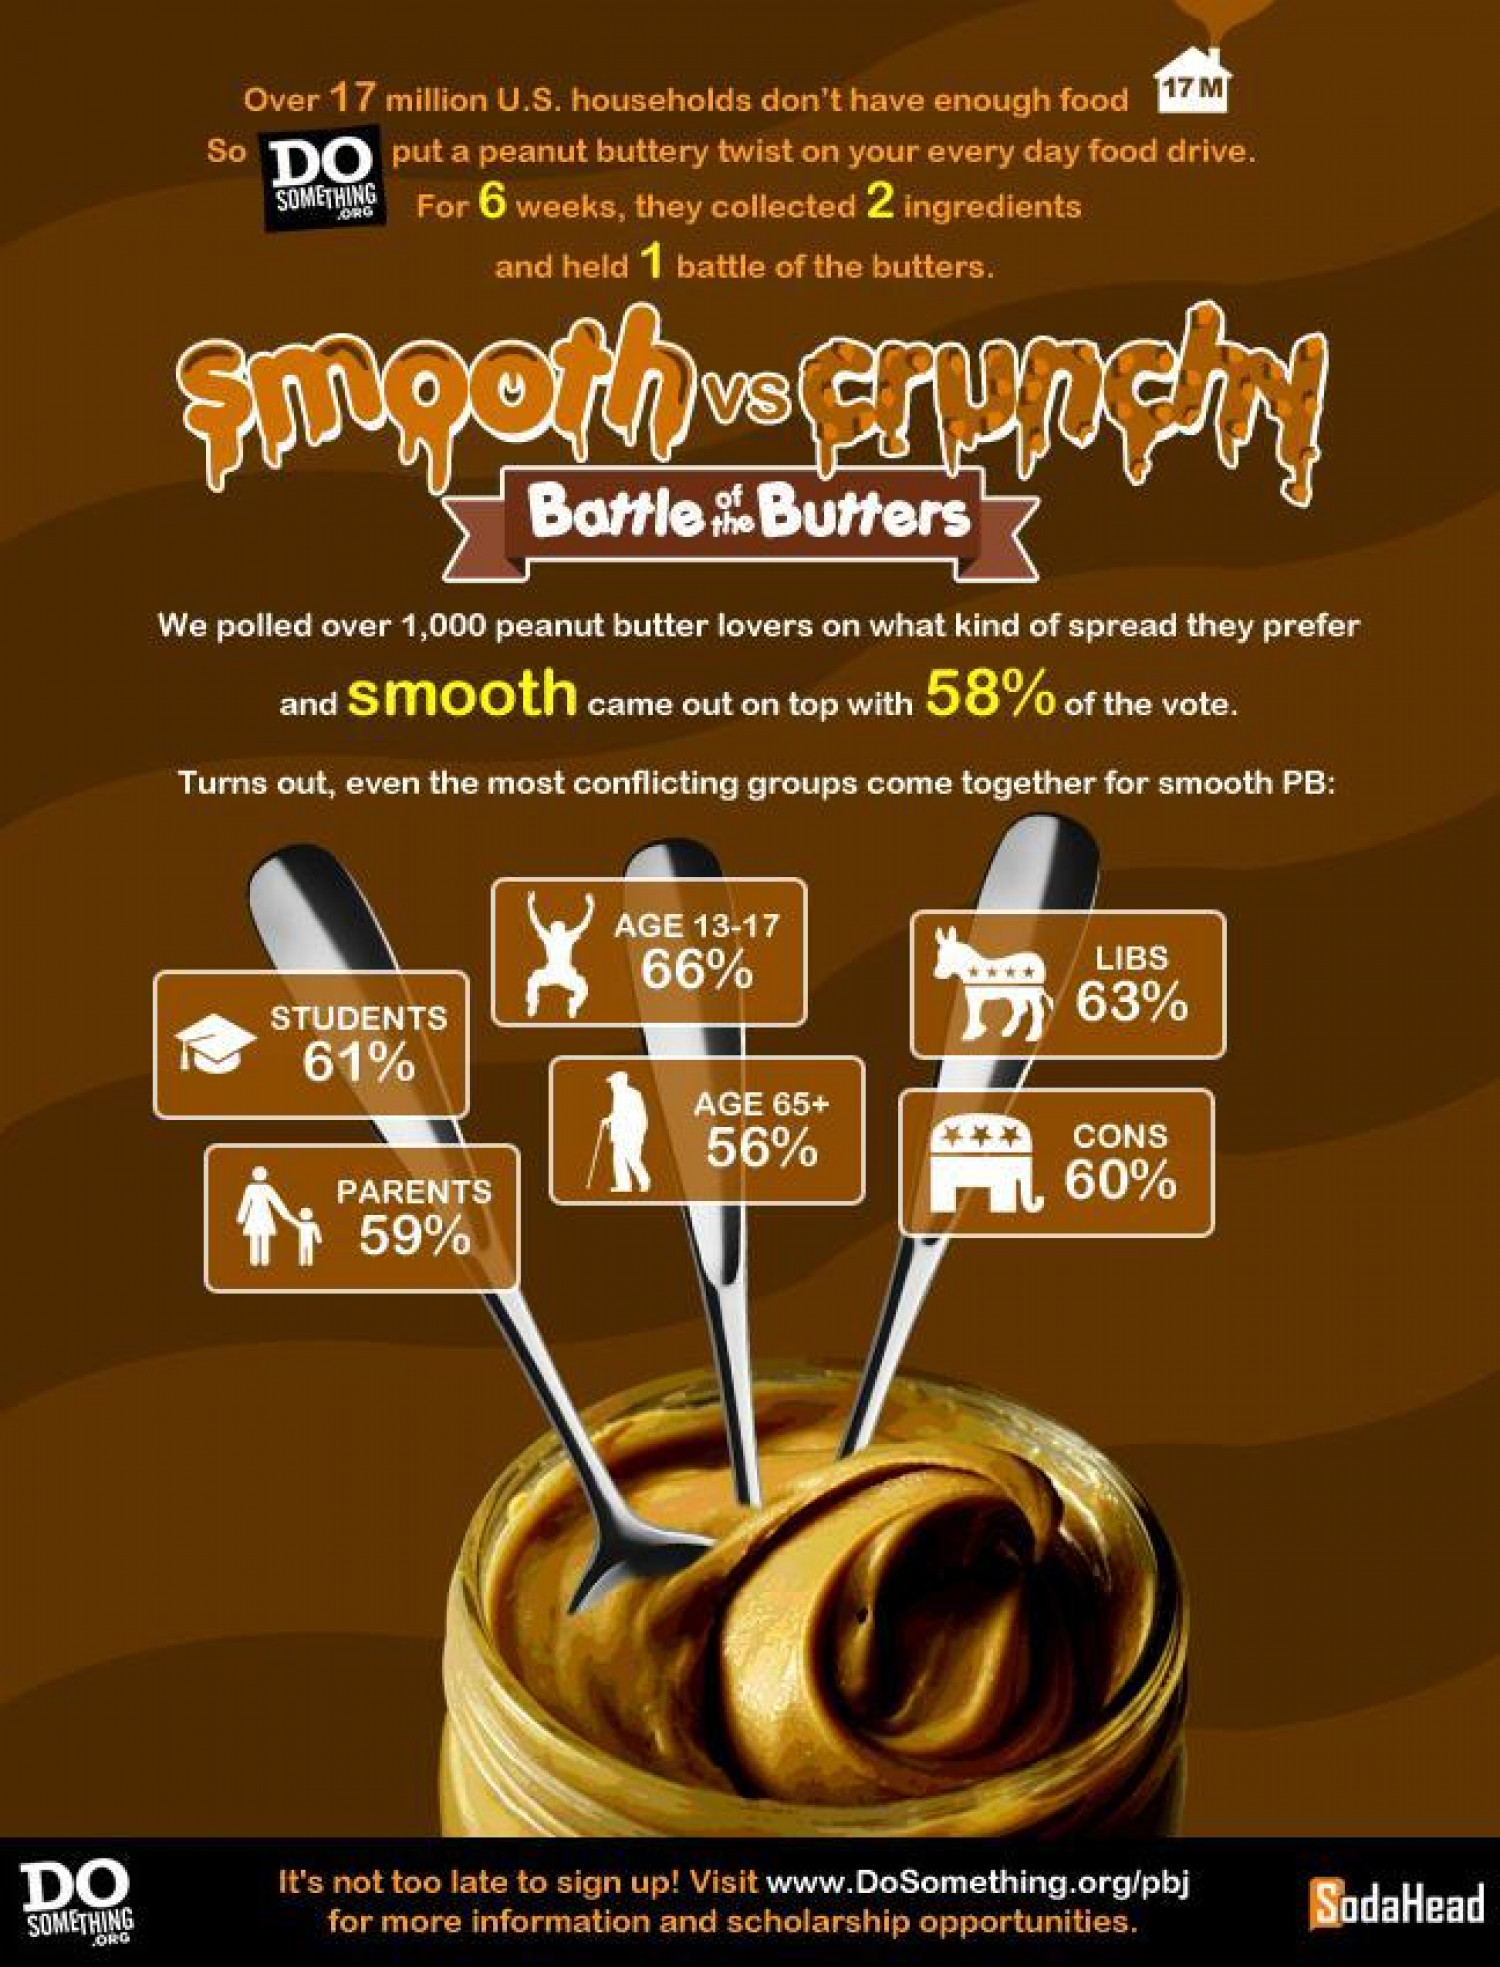 PUBLIC OPINION > People Prefer Smooth Peanut Butter Over Crunchy Infographic